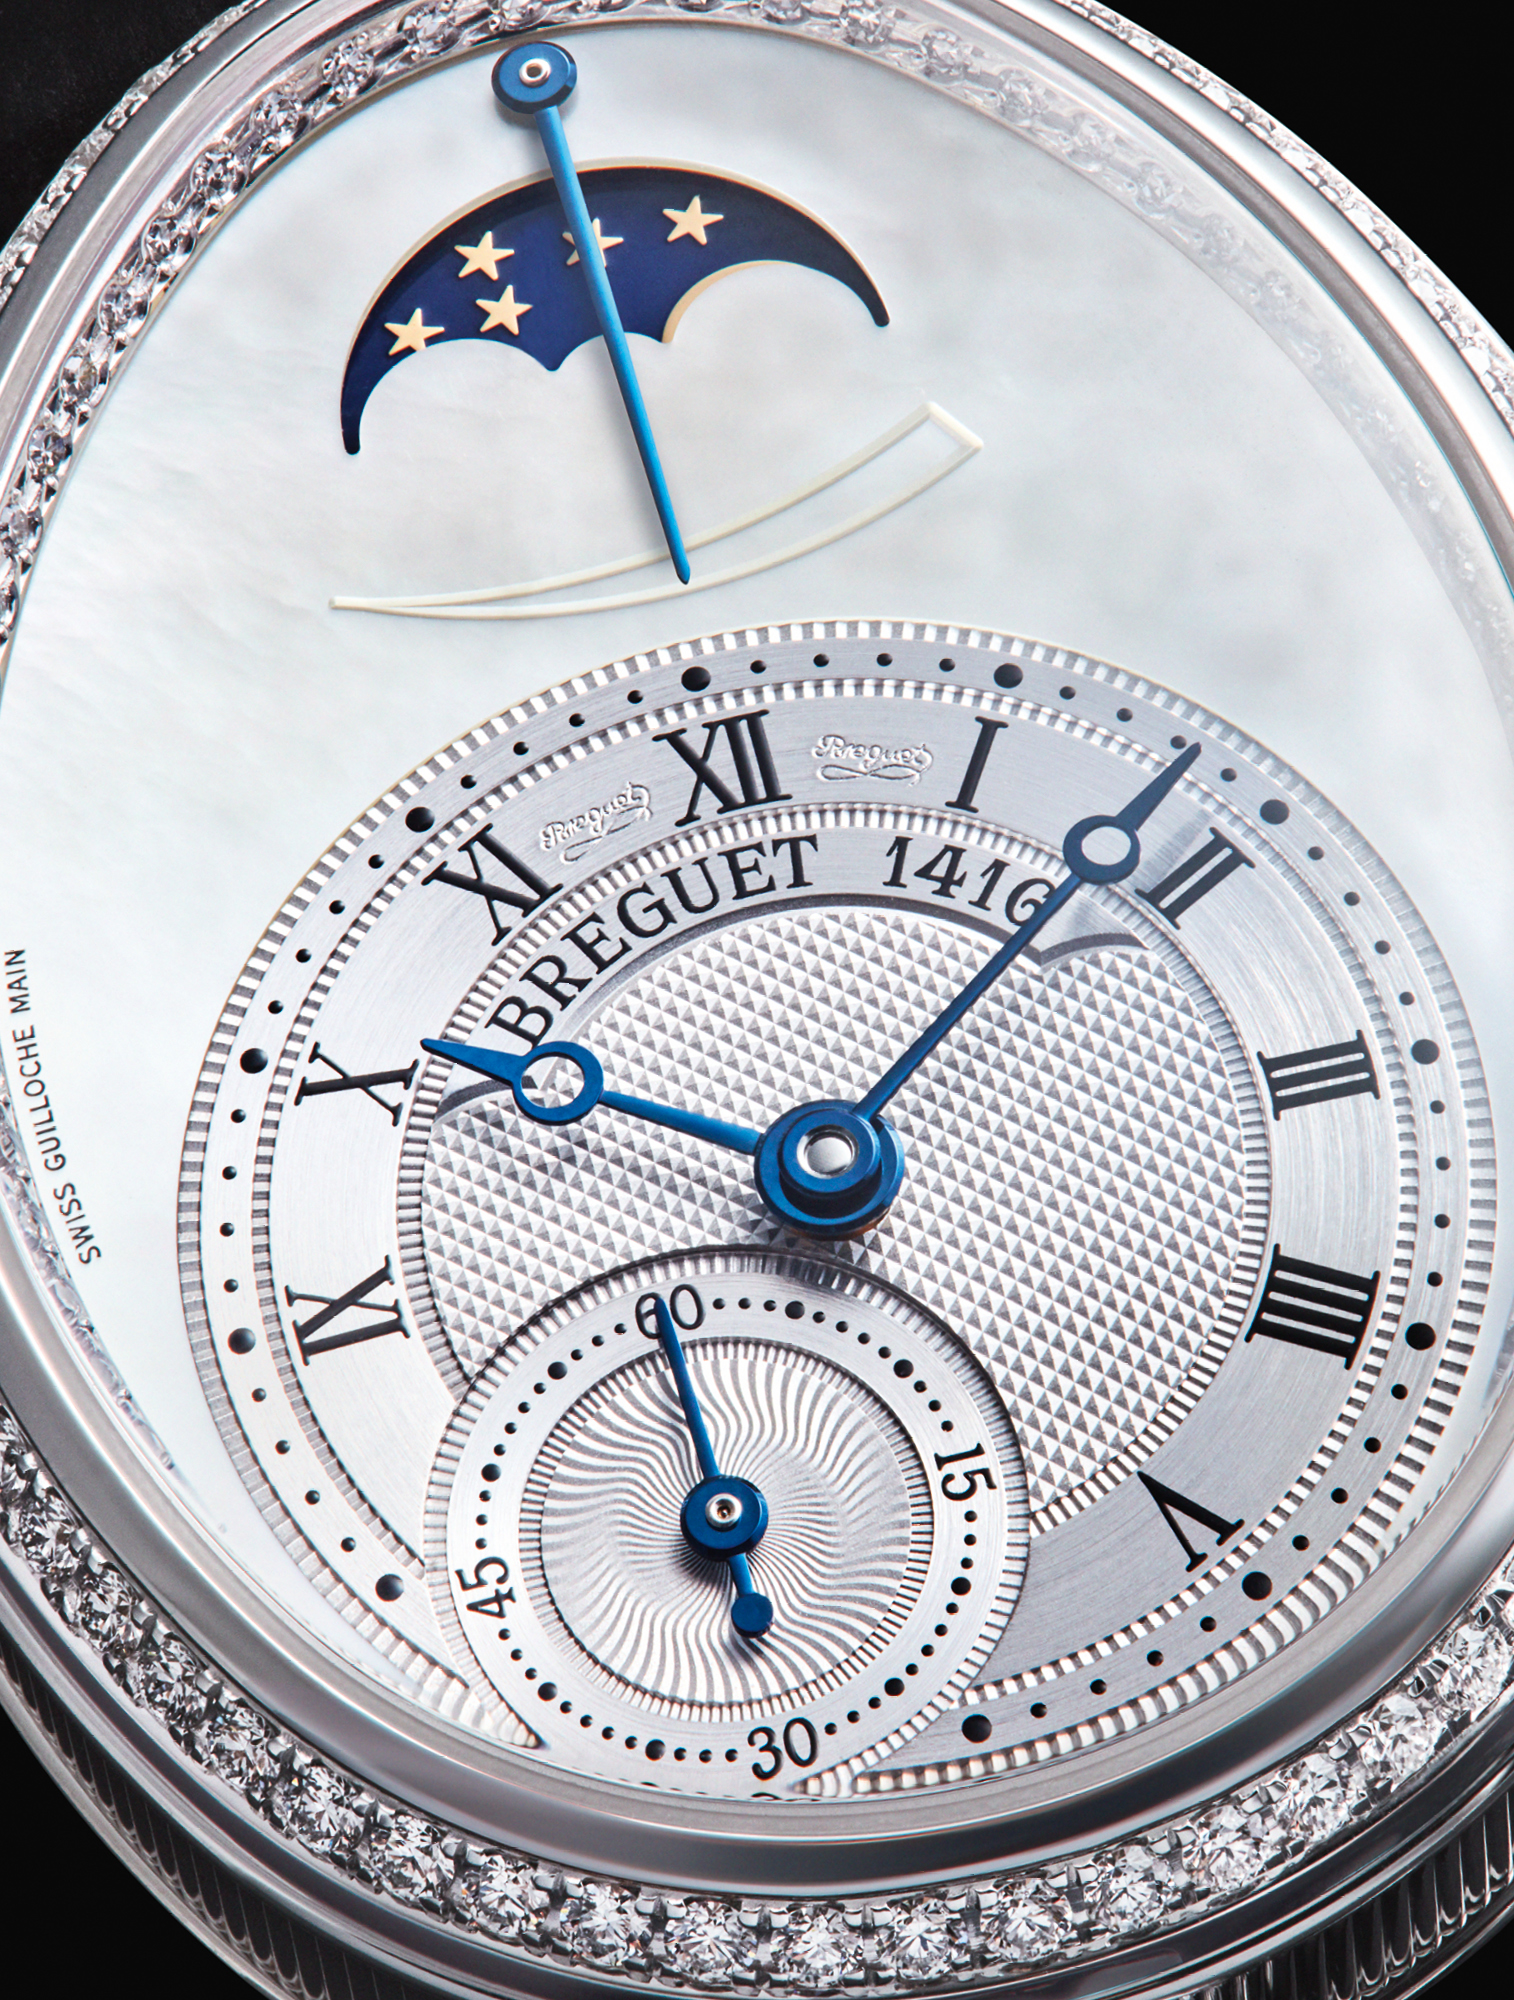 Distinguished by an 18ct white gold case set with 128 diamonds, Breguet's Reine de Naples 8908 wristwatch references the original model and displays a number of beautiful guilloché techniques. £29,900, BREGUET